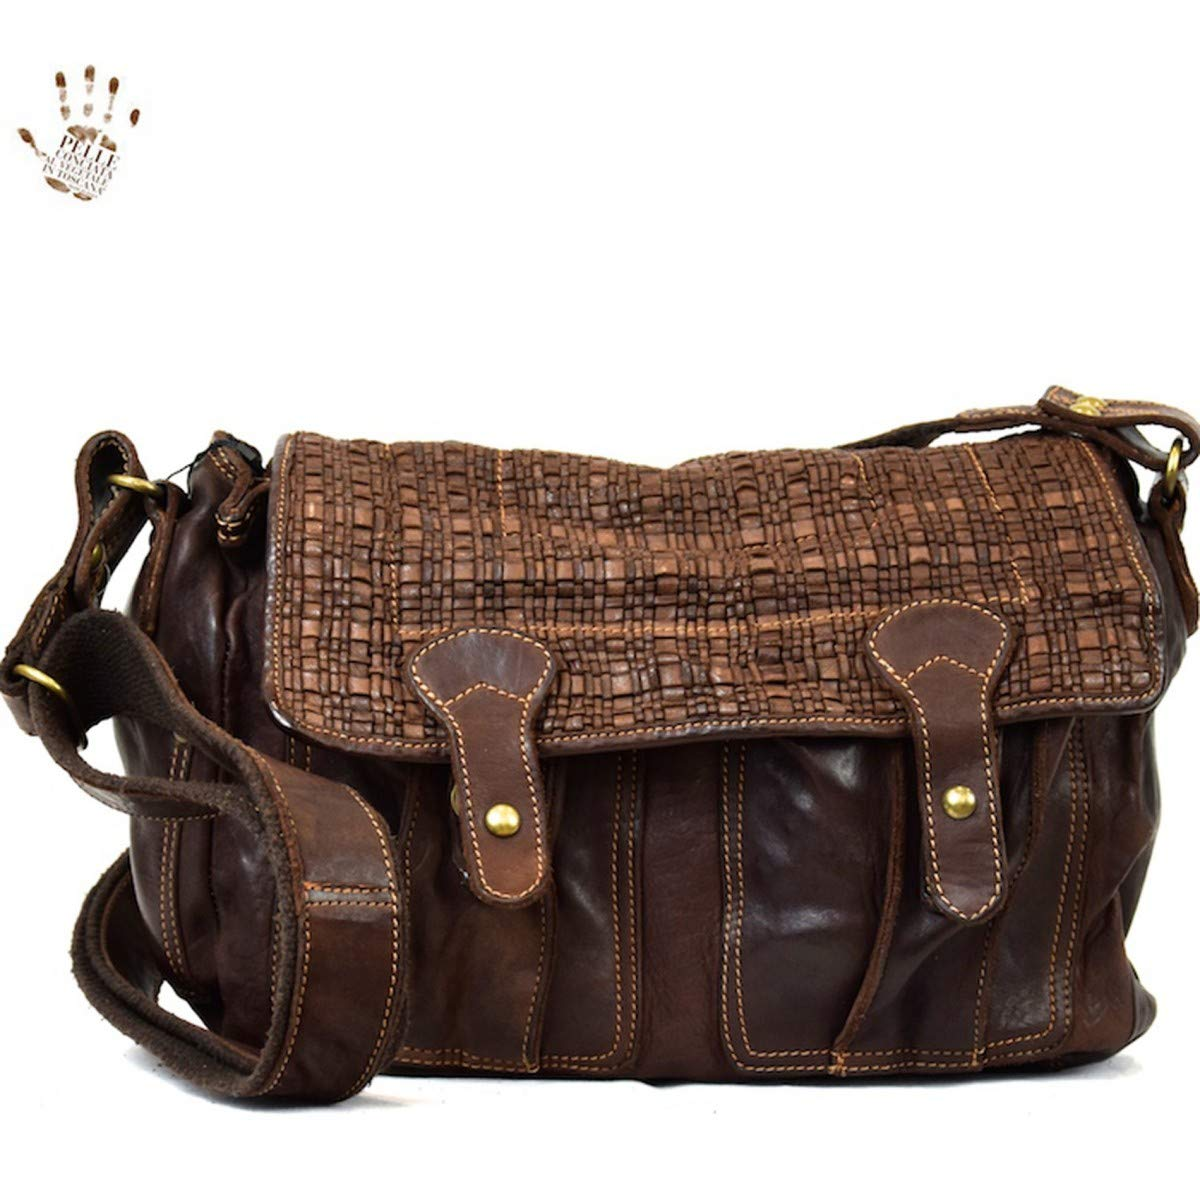 Dream Leather Bags Made in Italy Genuine Leather メンズ 646-2 US サイズ: 1 M US カラー: ブラウン B07J9R7QQY